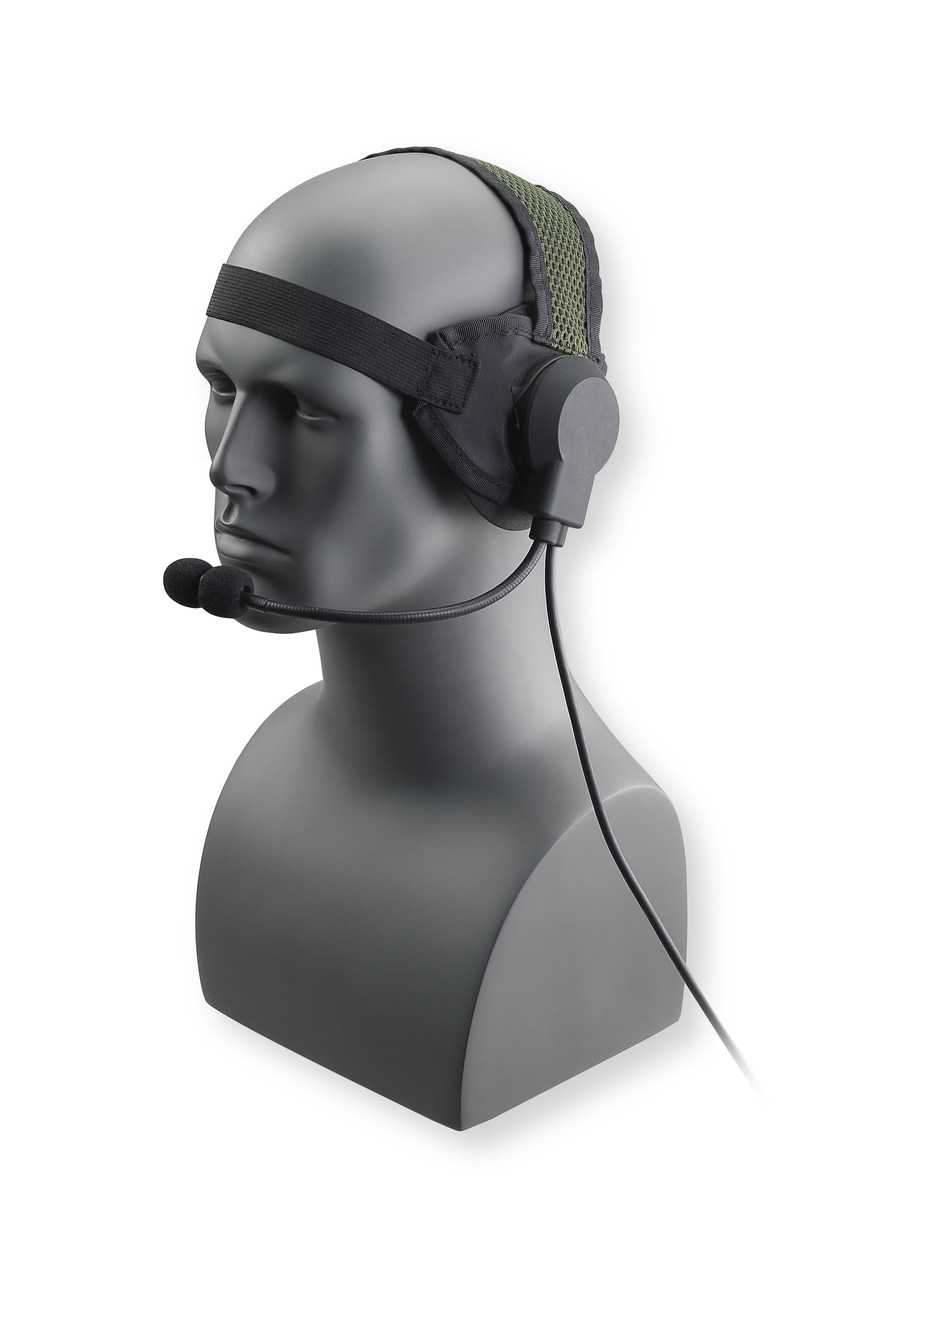 OTTO's 20 Meter Diver Headset